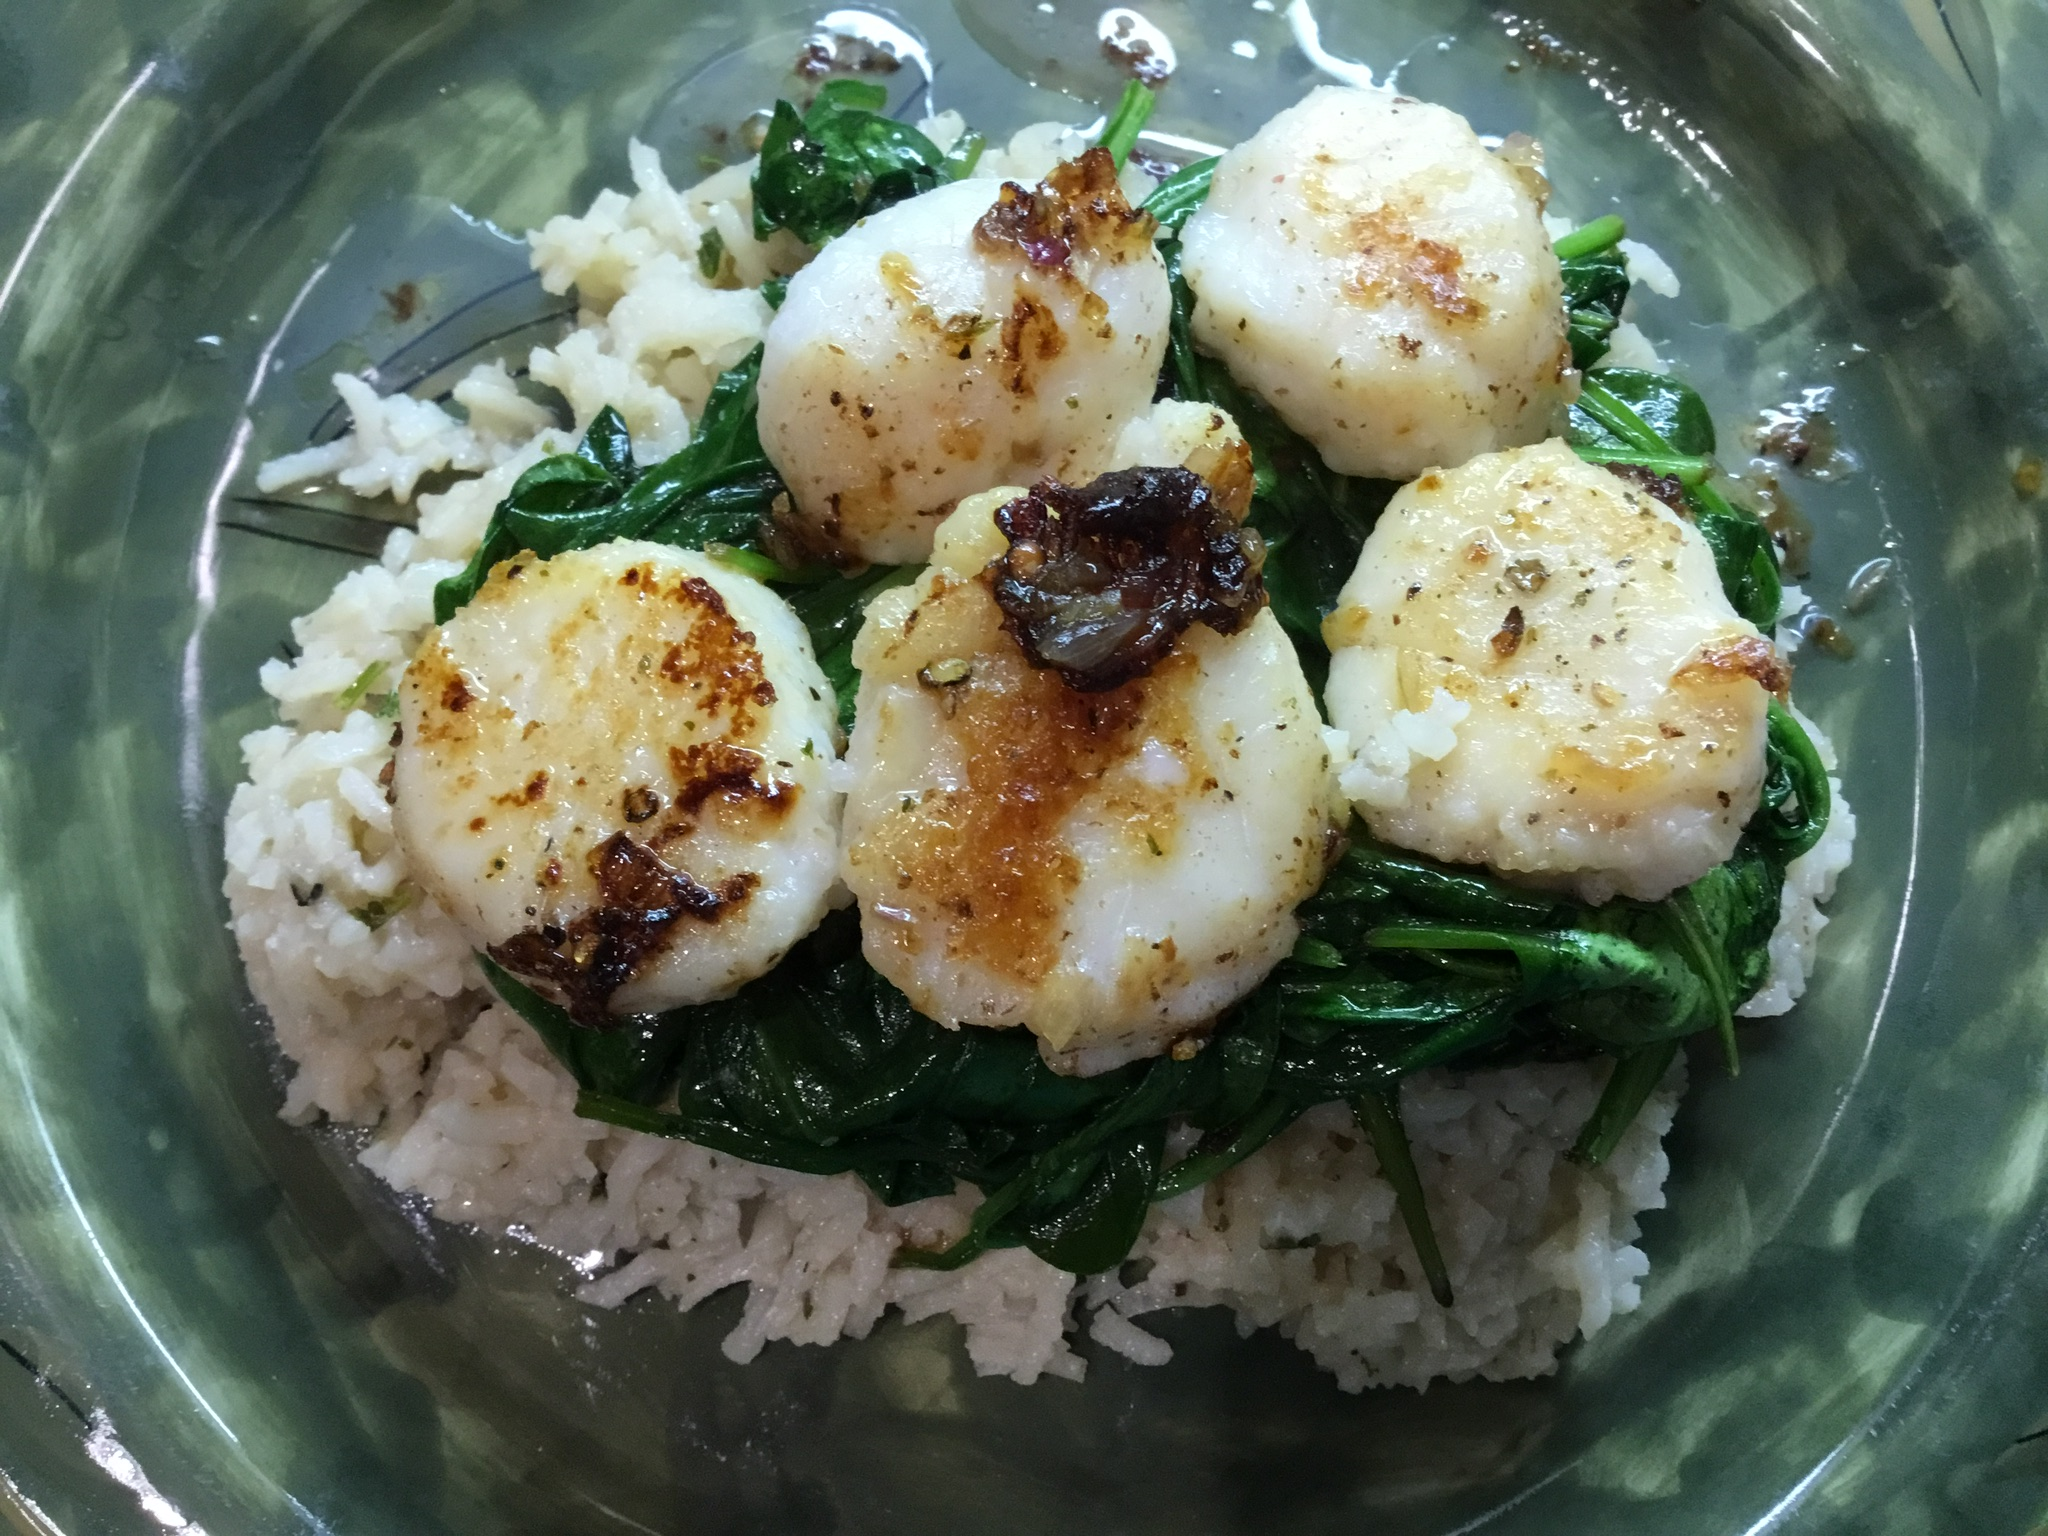 successful weight loss programs include scallops